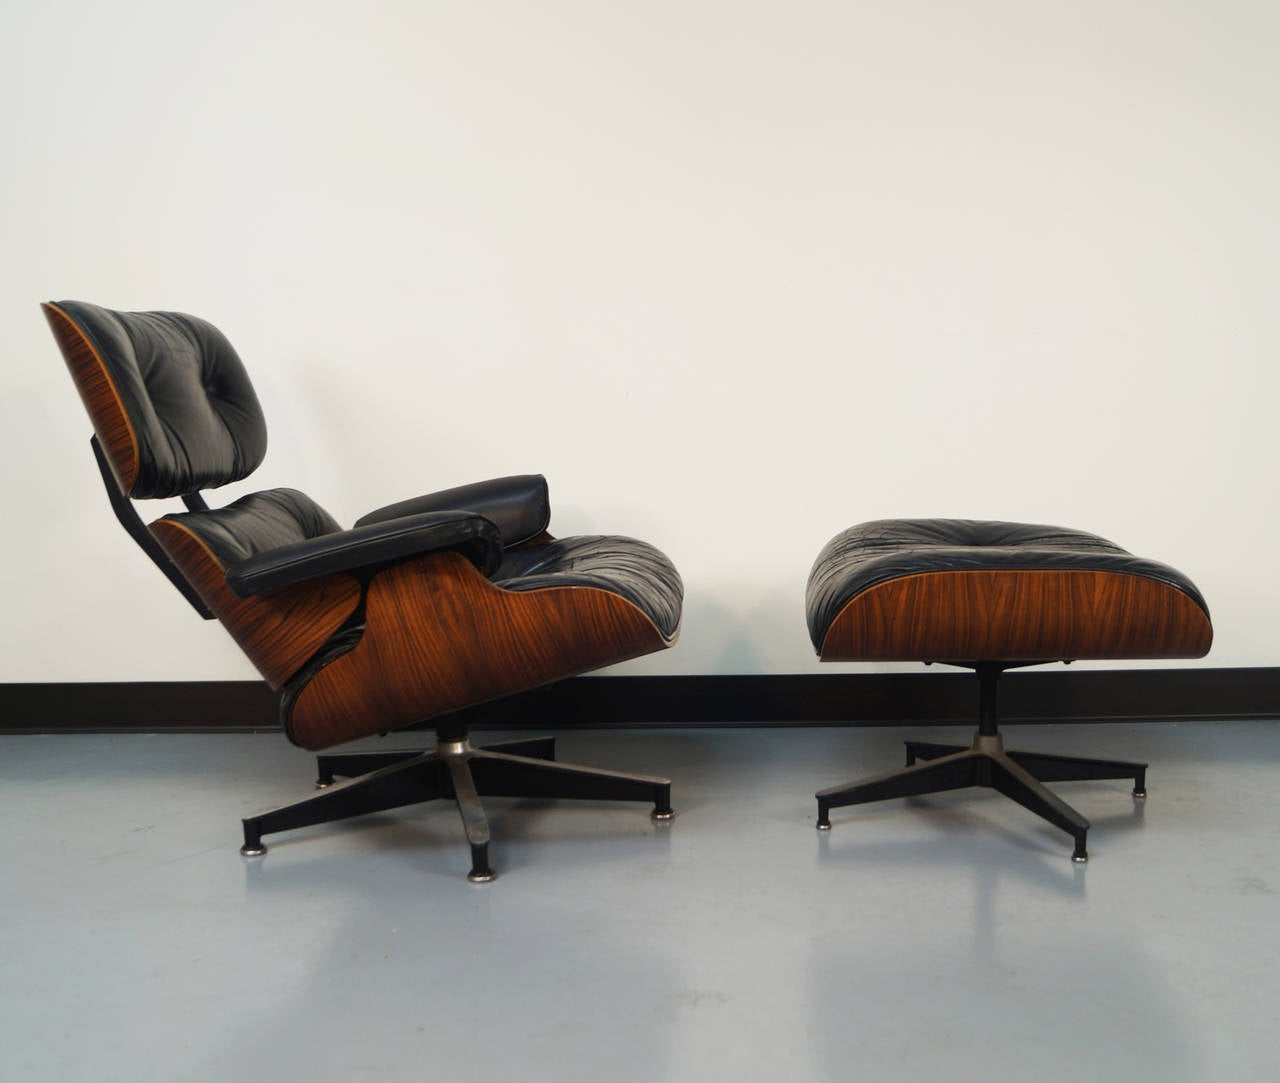 Eames Chairs Qld Rosewood Charles Eames Lounge Chair And Ottoman For Herman